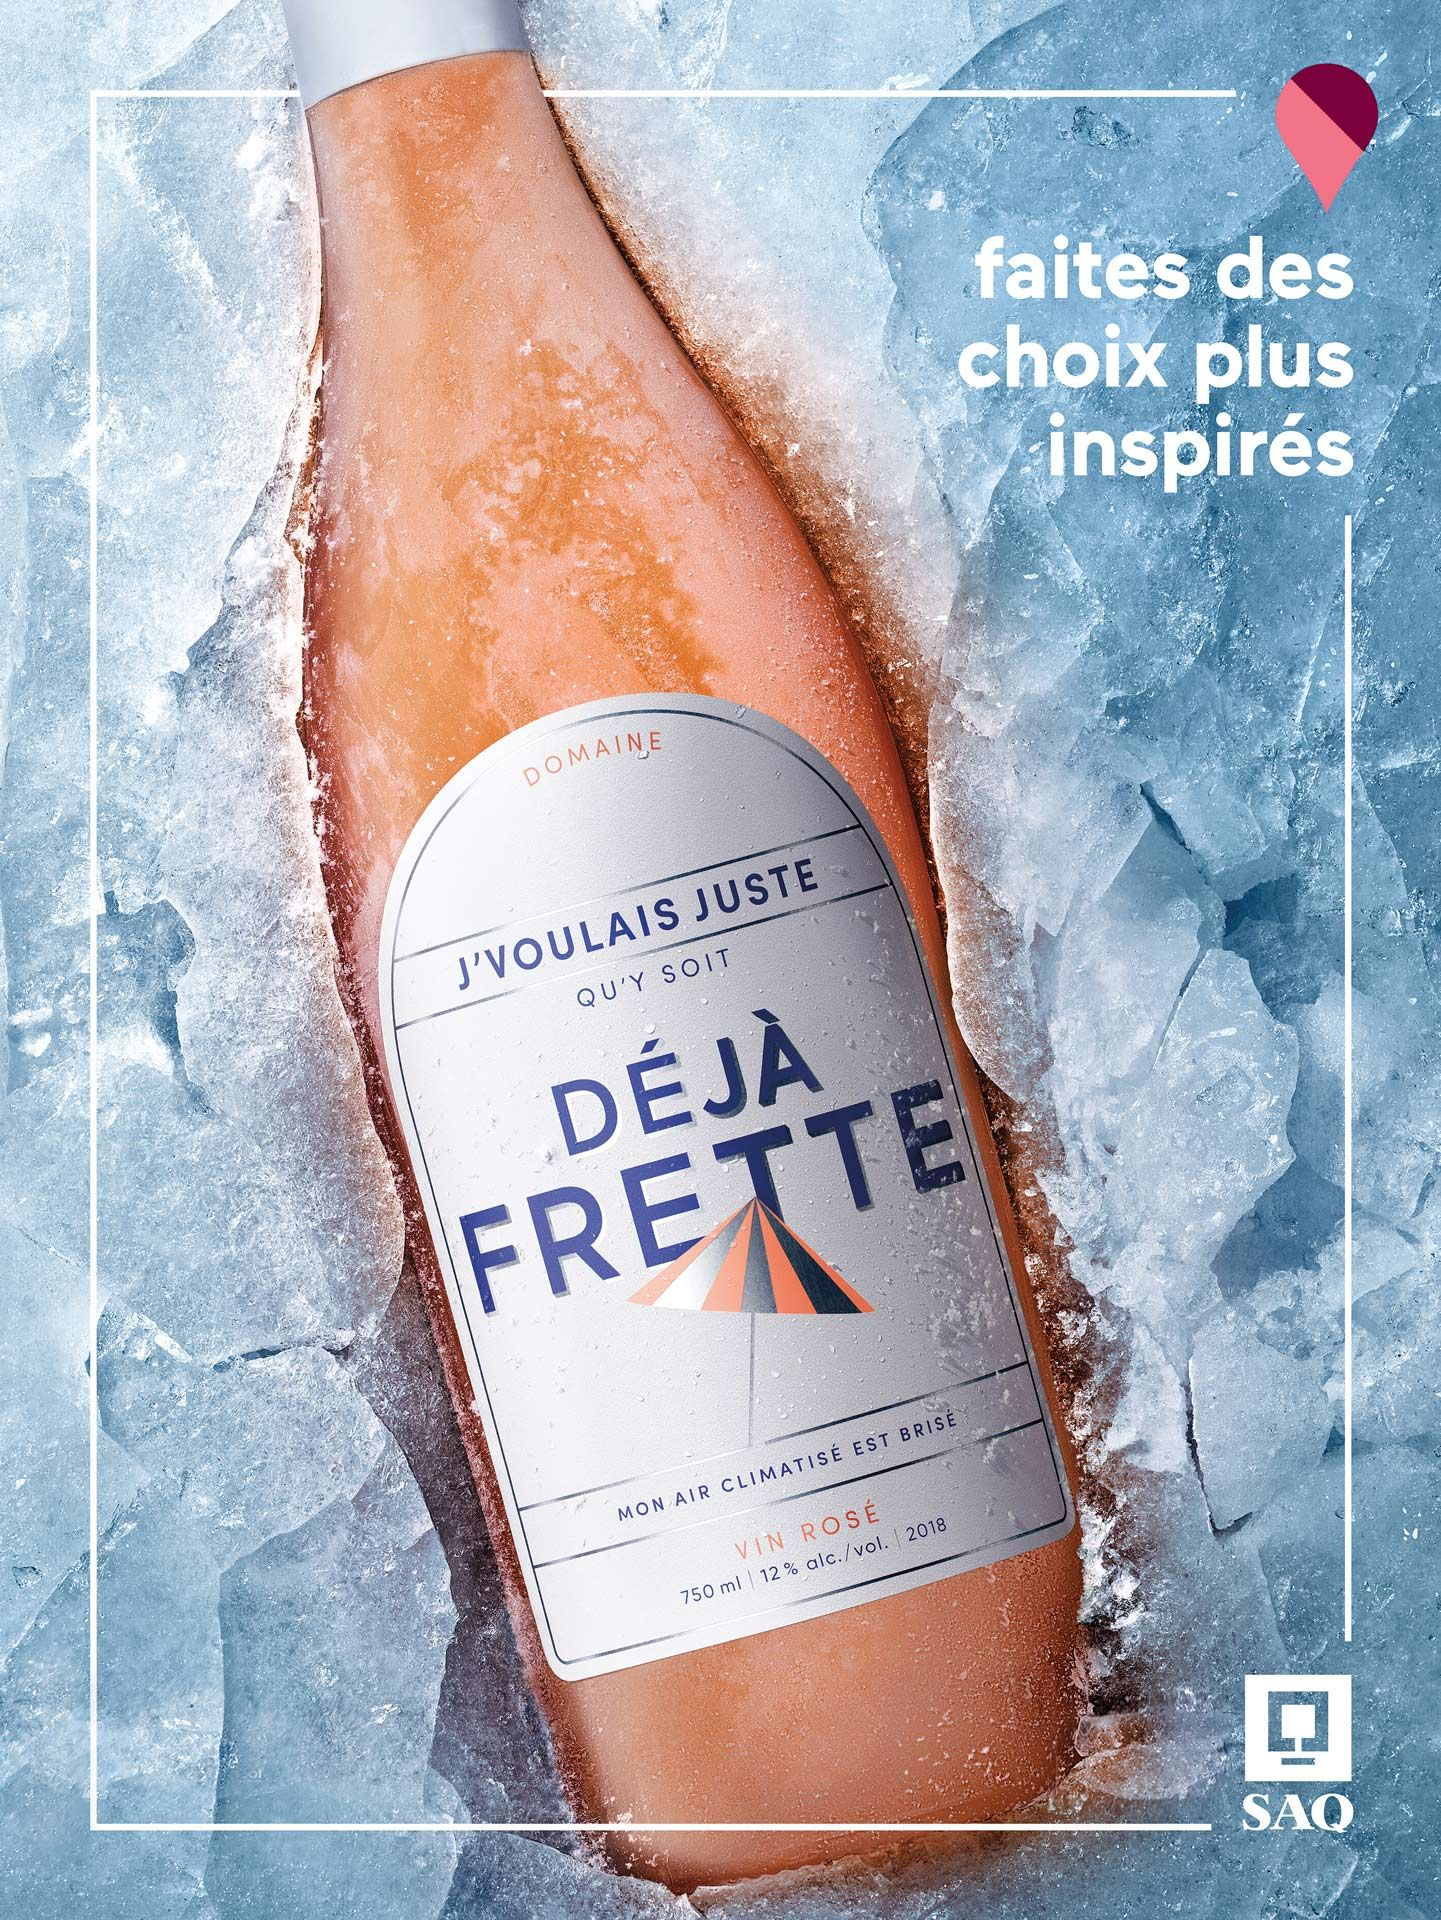 wine bottle in ice photographed by Mathieu Levesque for the SAQ Make Inspired Choices campaign